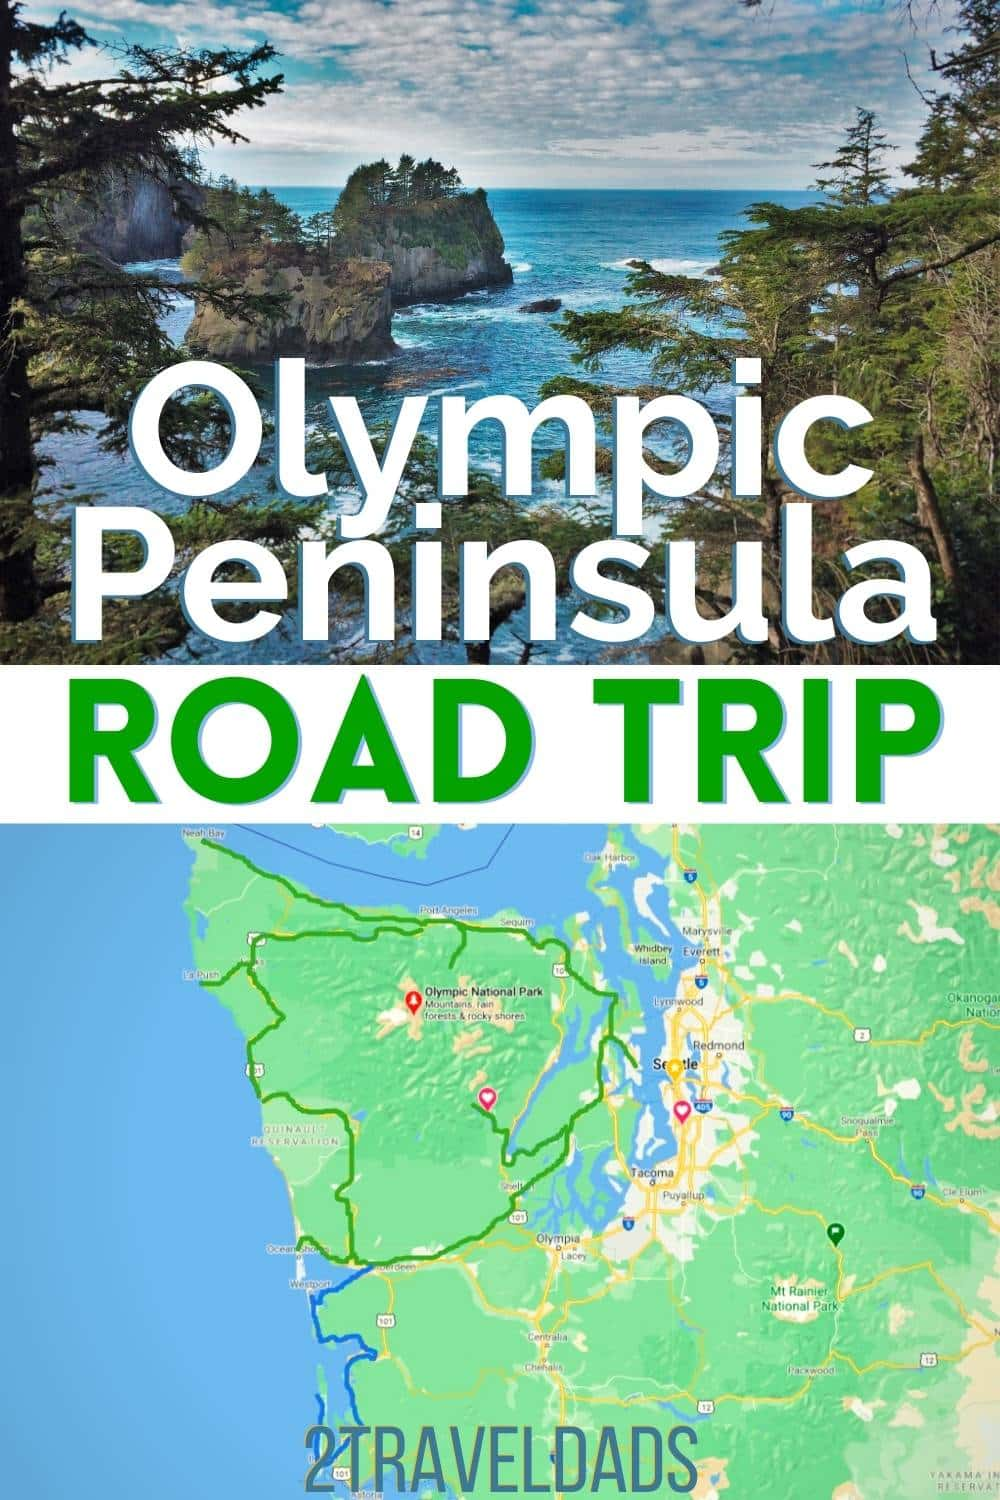 An Olympic Peninsula Road Trip is a great weekend getaway or local vacation near Seattle. See the best stops around Highway 101, waterfalls and hikes in Olympic National Park, beautiful small towns and the rugged Washington Coast. Perfect Pacific Northwest vacation itinerary.